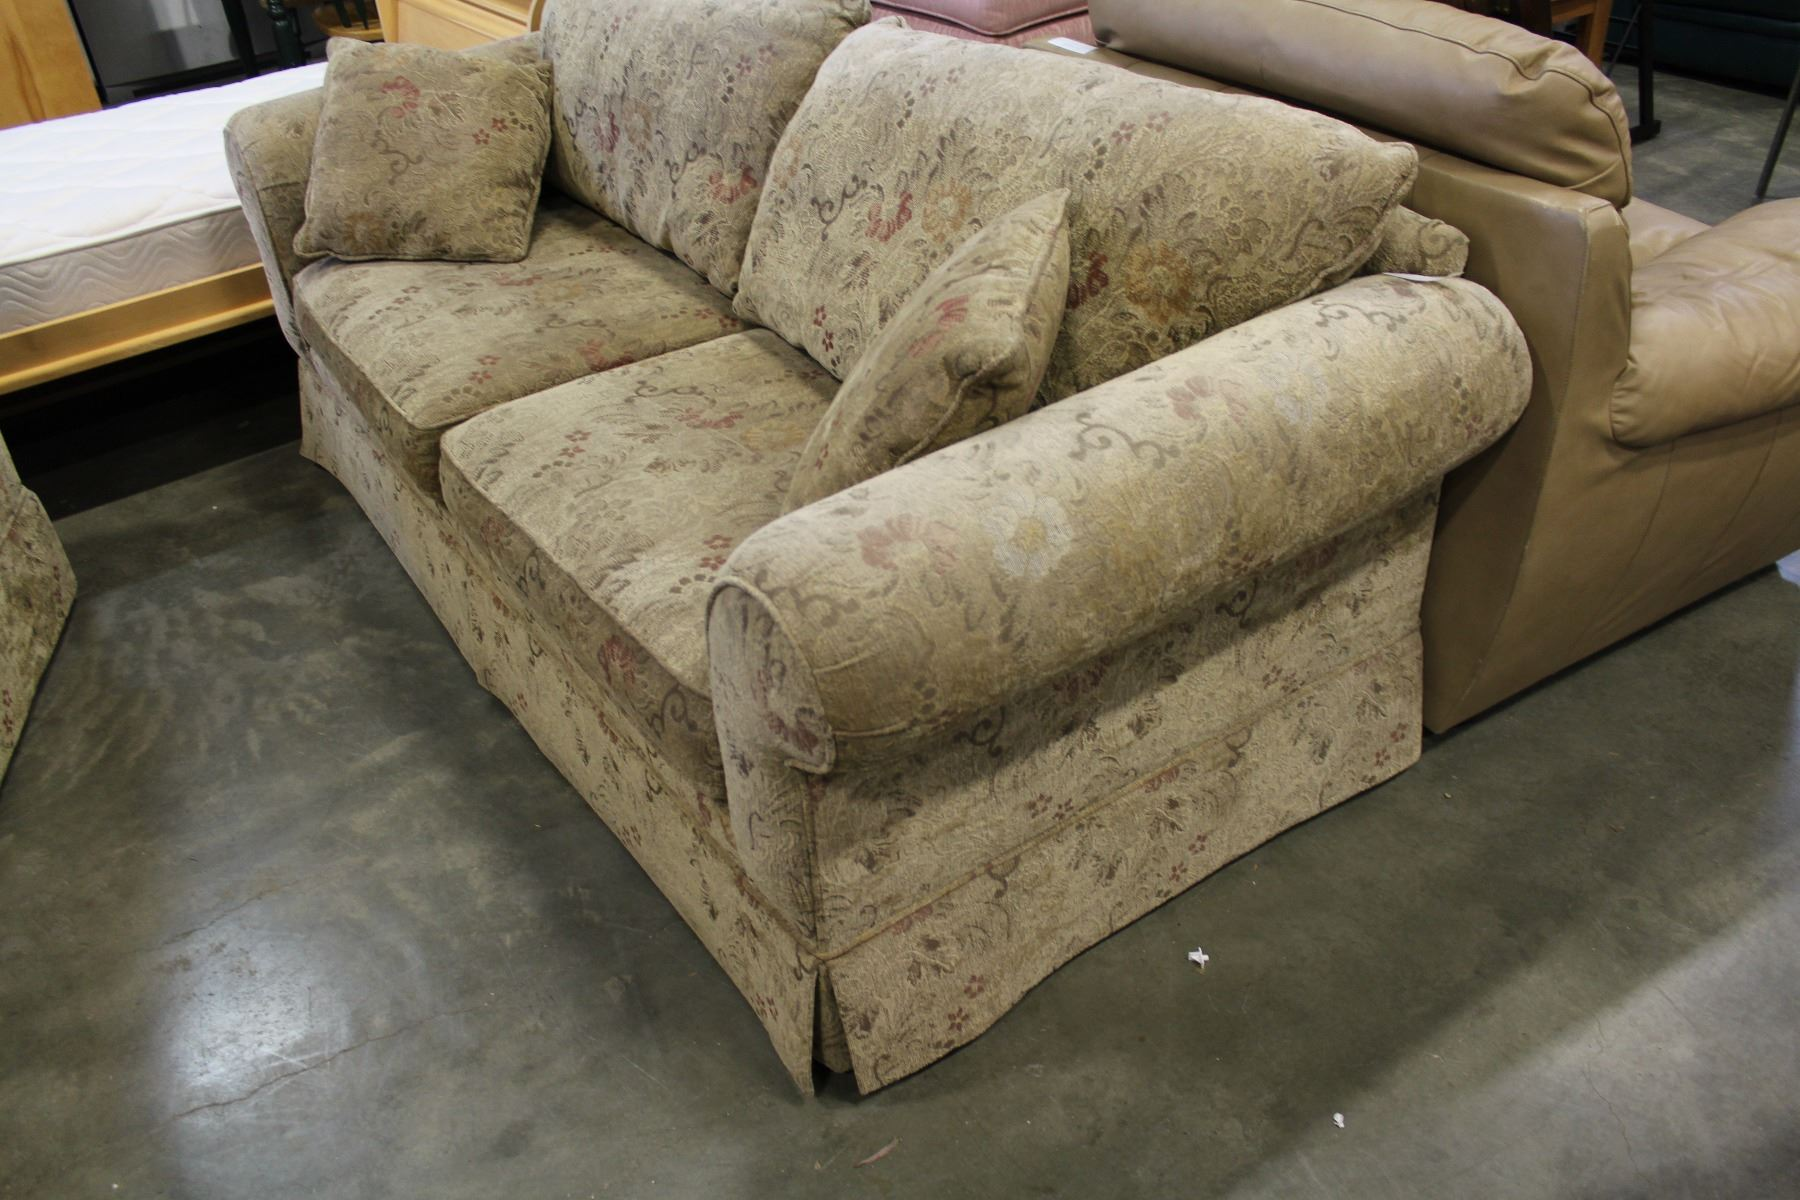 ... Image 2 : COUCH POTATO SOFA AND LOVESEAT ...